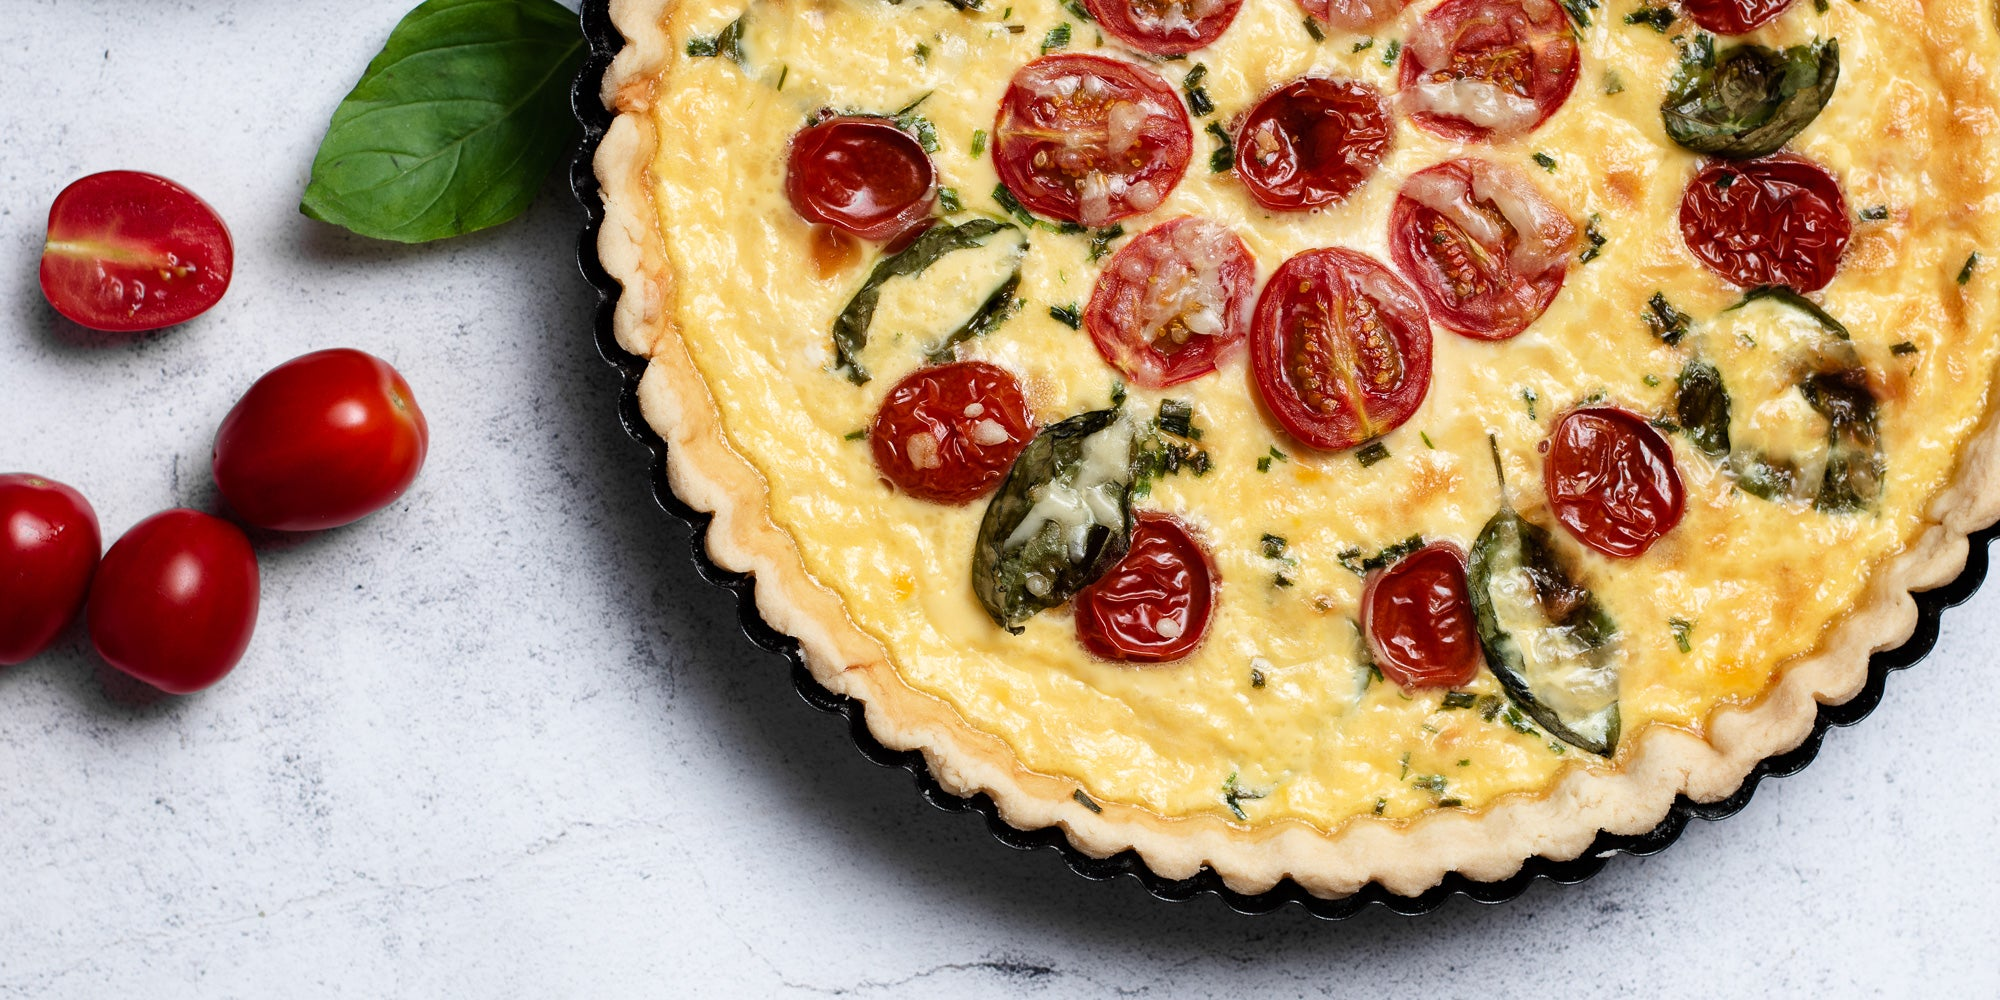 Close up of a Cheese & Tomato Quiche with whole tomatoes and a basil leaf in a pastry baking tray